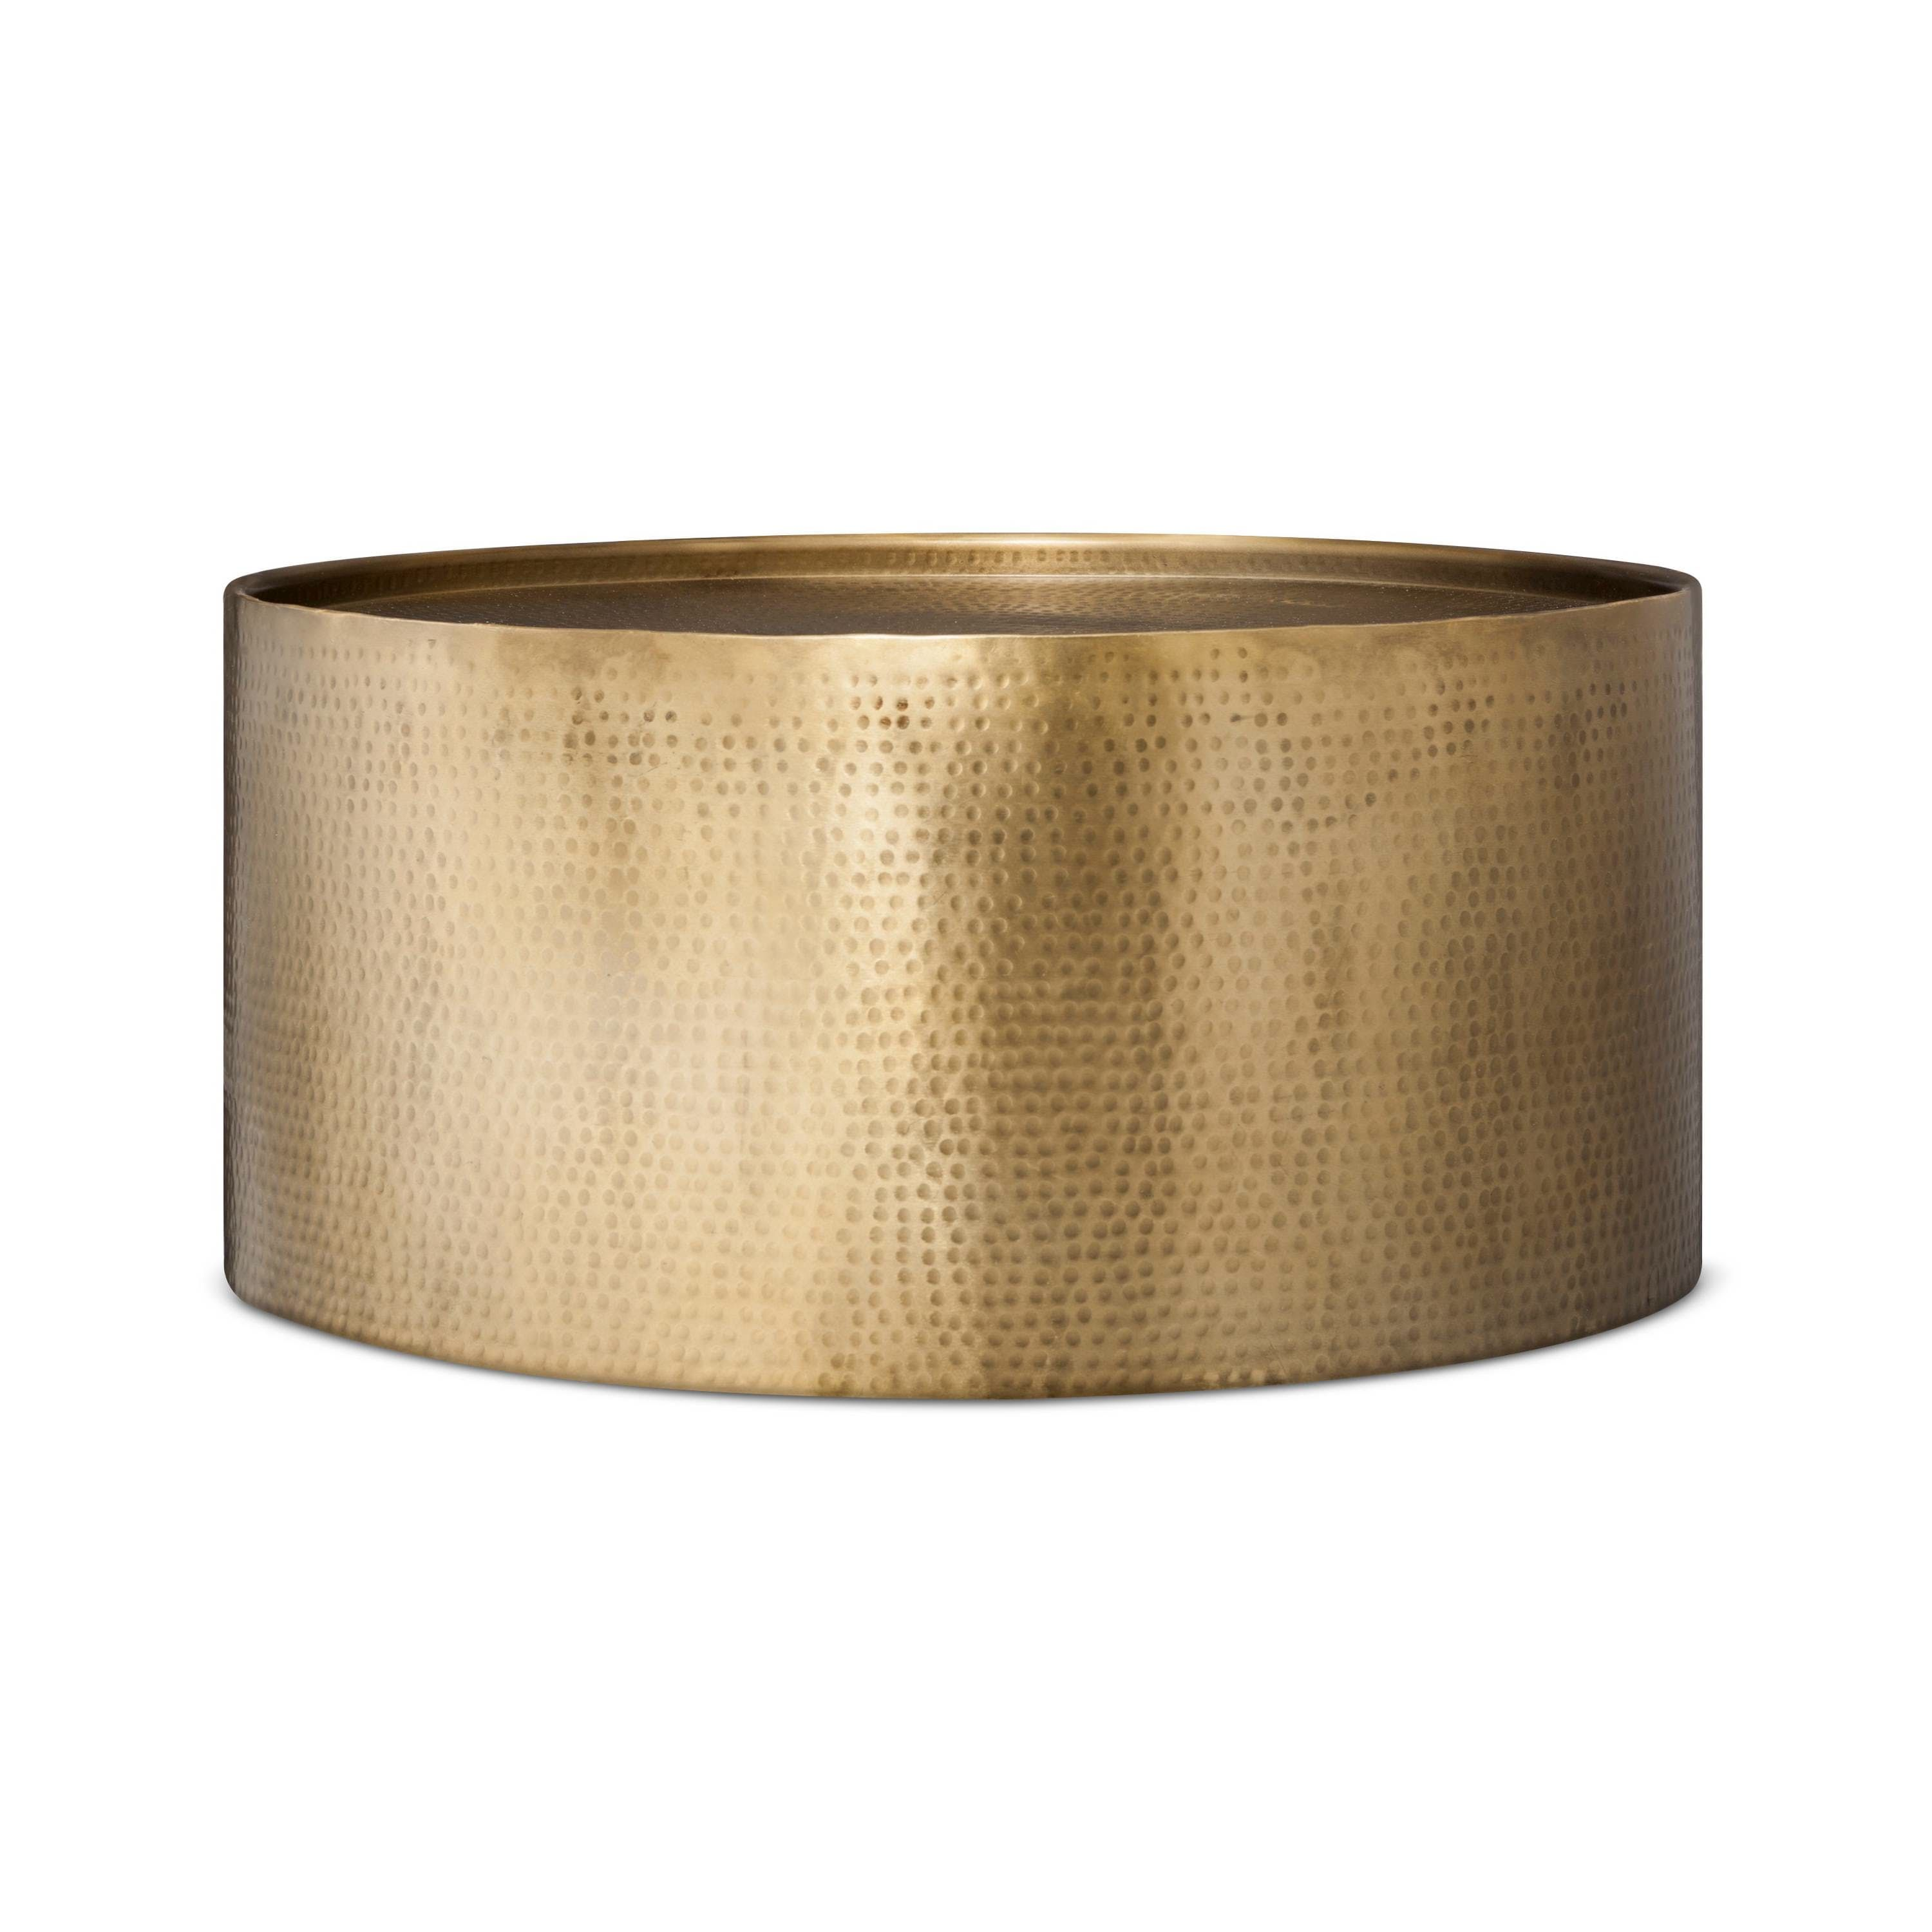 12 Times Target Products Looked Next Level Barrel Coffee Table Gold Coffee Table Barrel Coffee